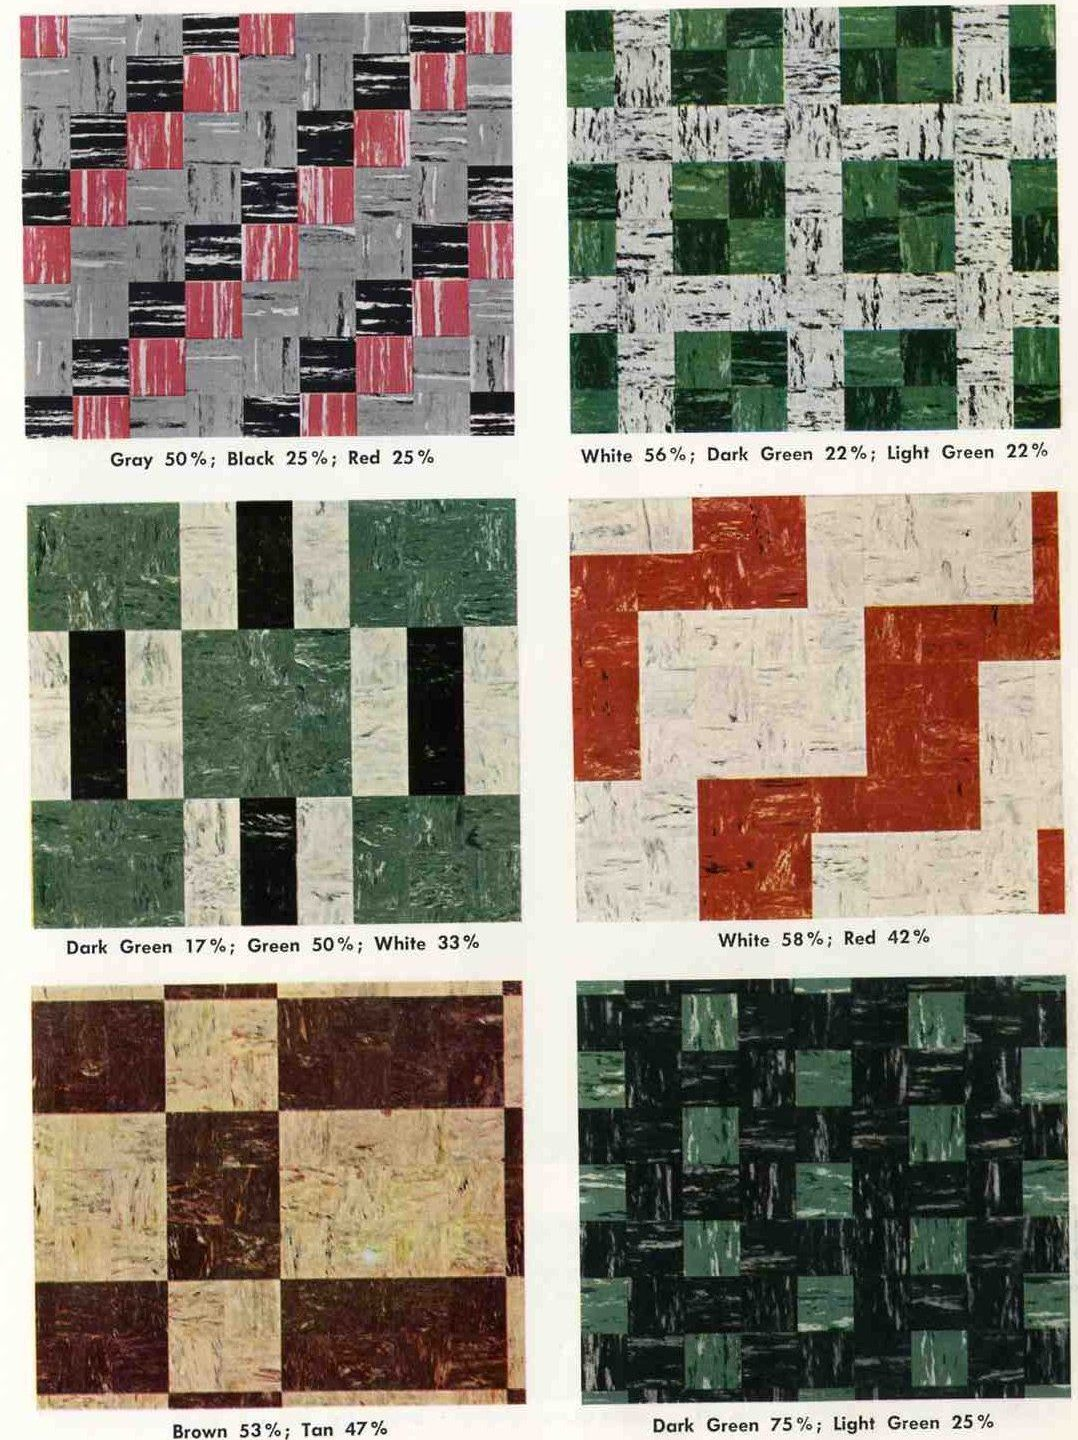 30 Patterns For Vinyl Floor Tiles From The 1950s Floor